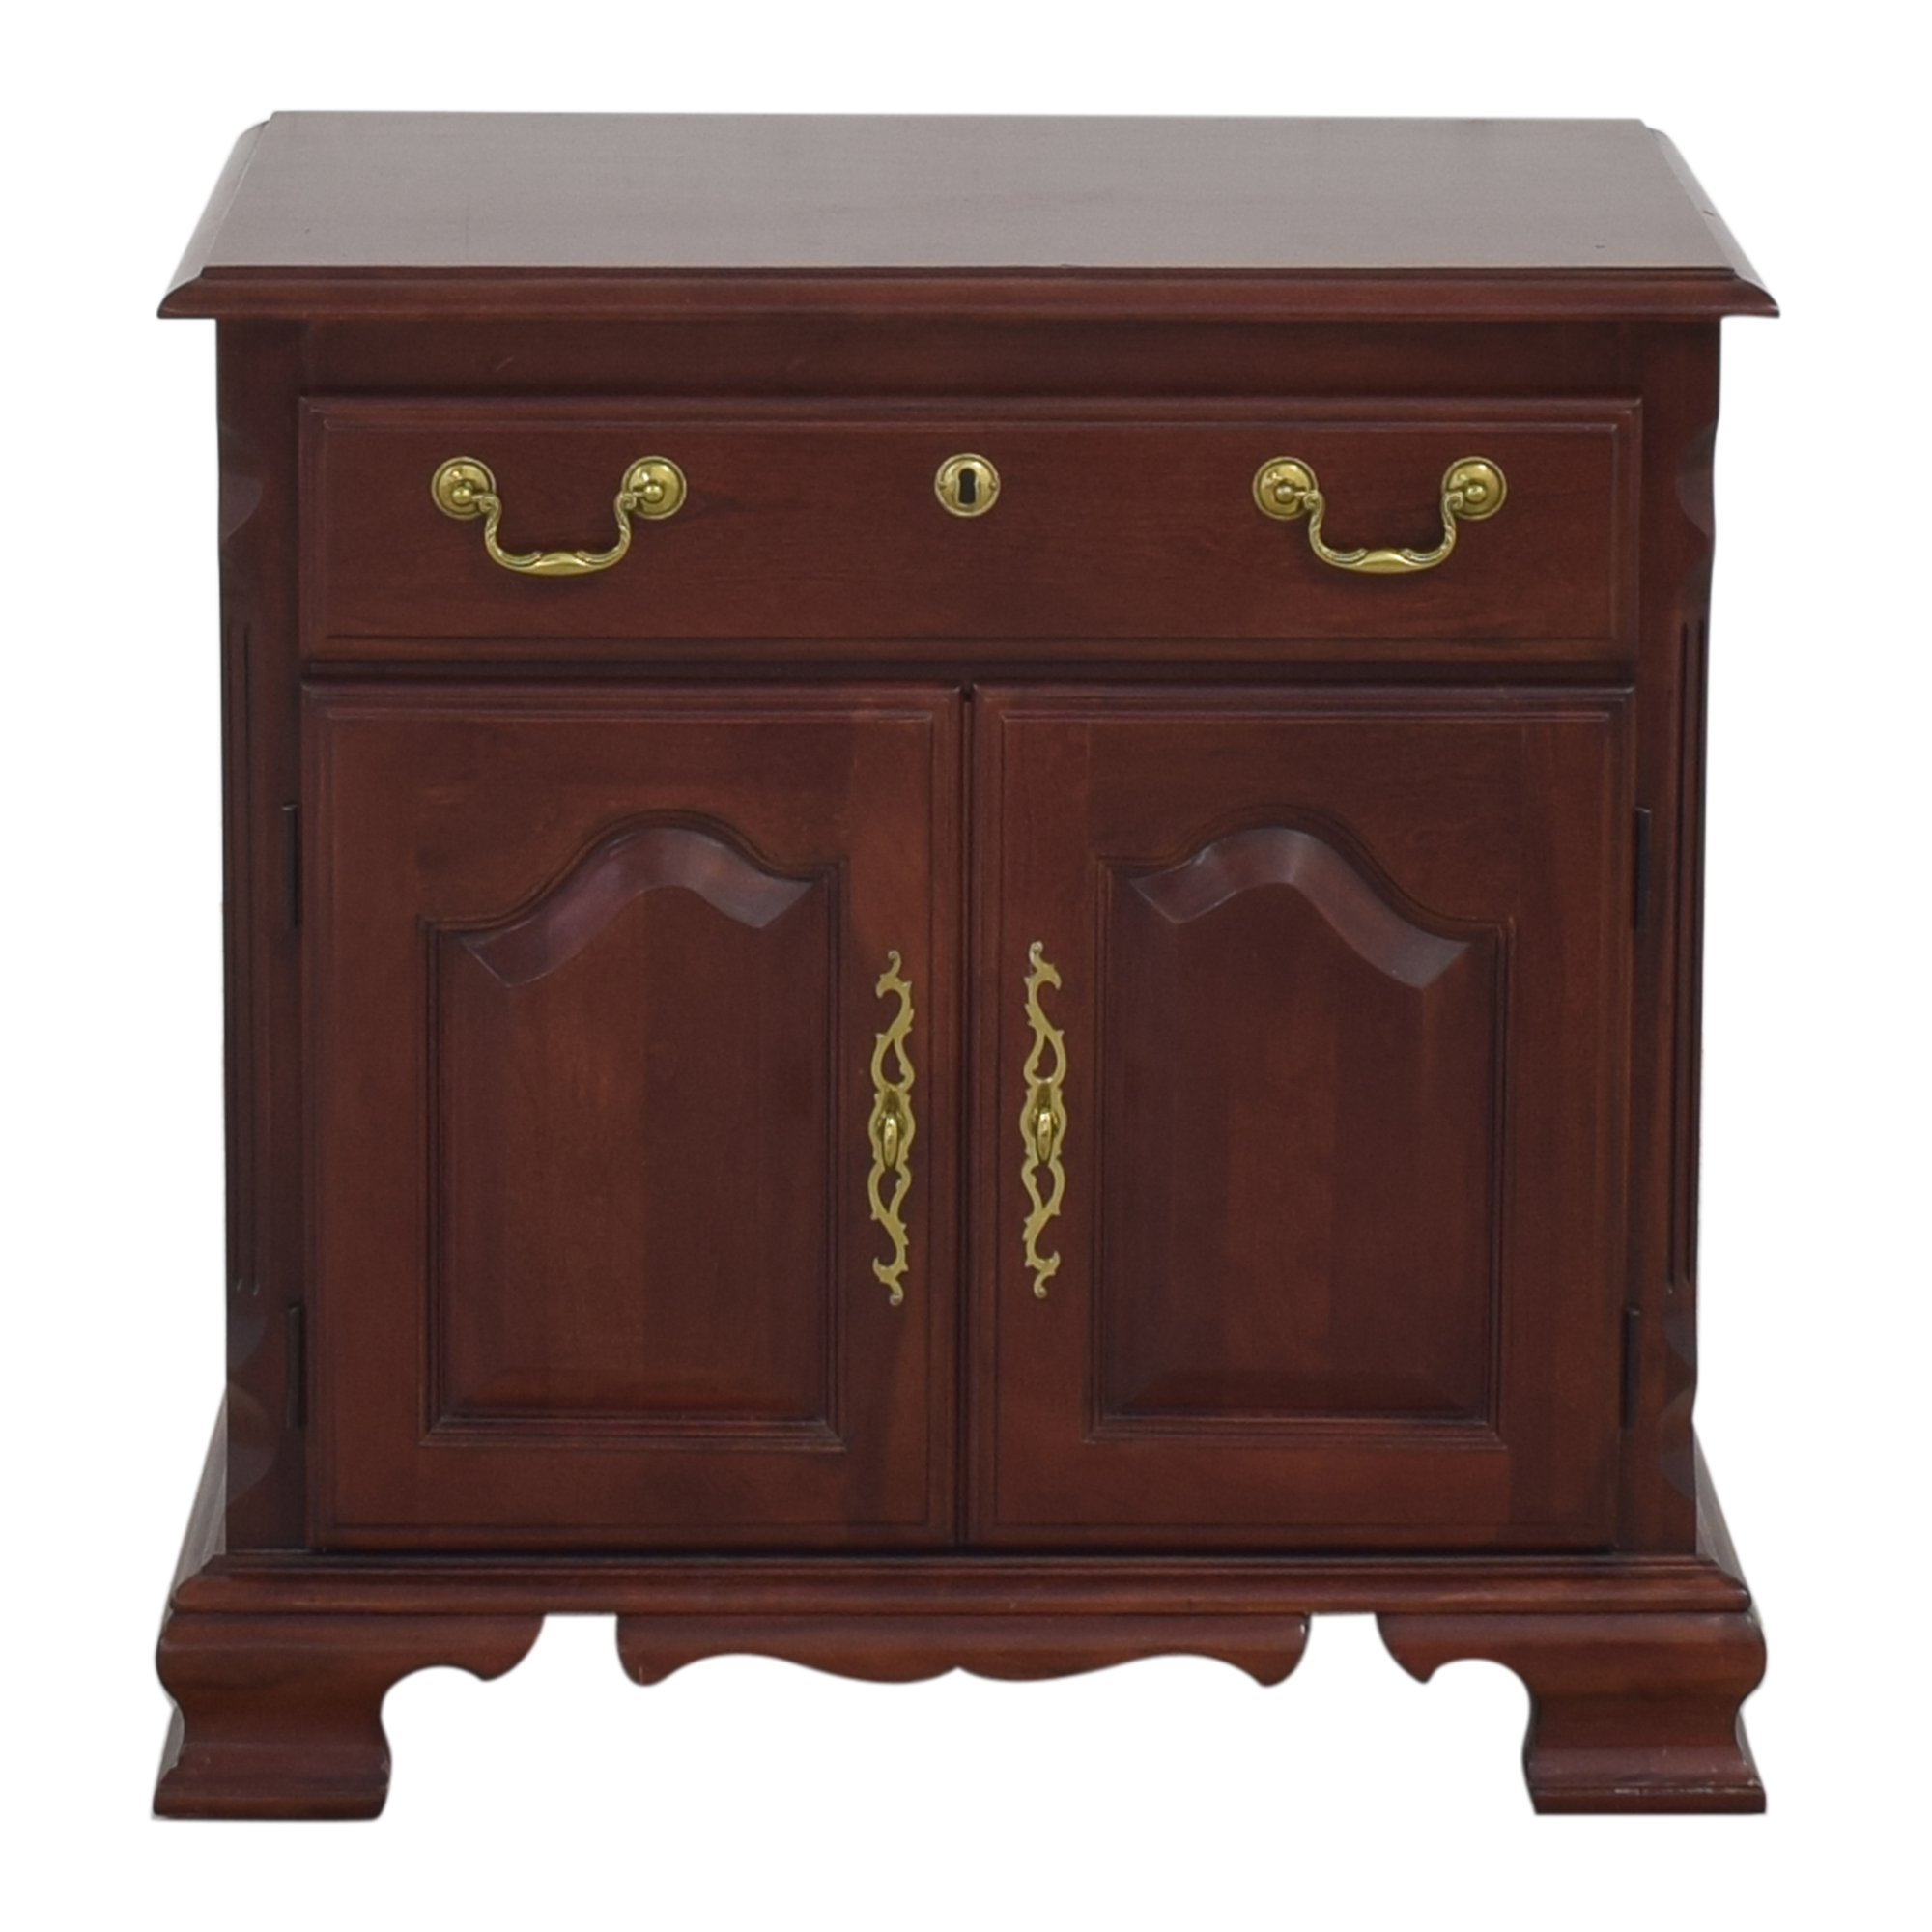 Pennsylvania House Nightstand / End Tables